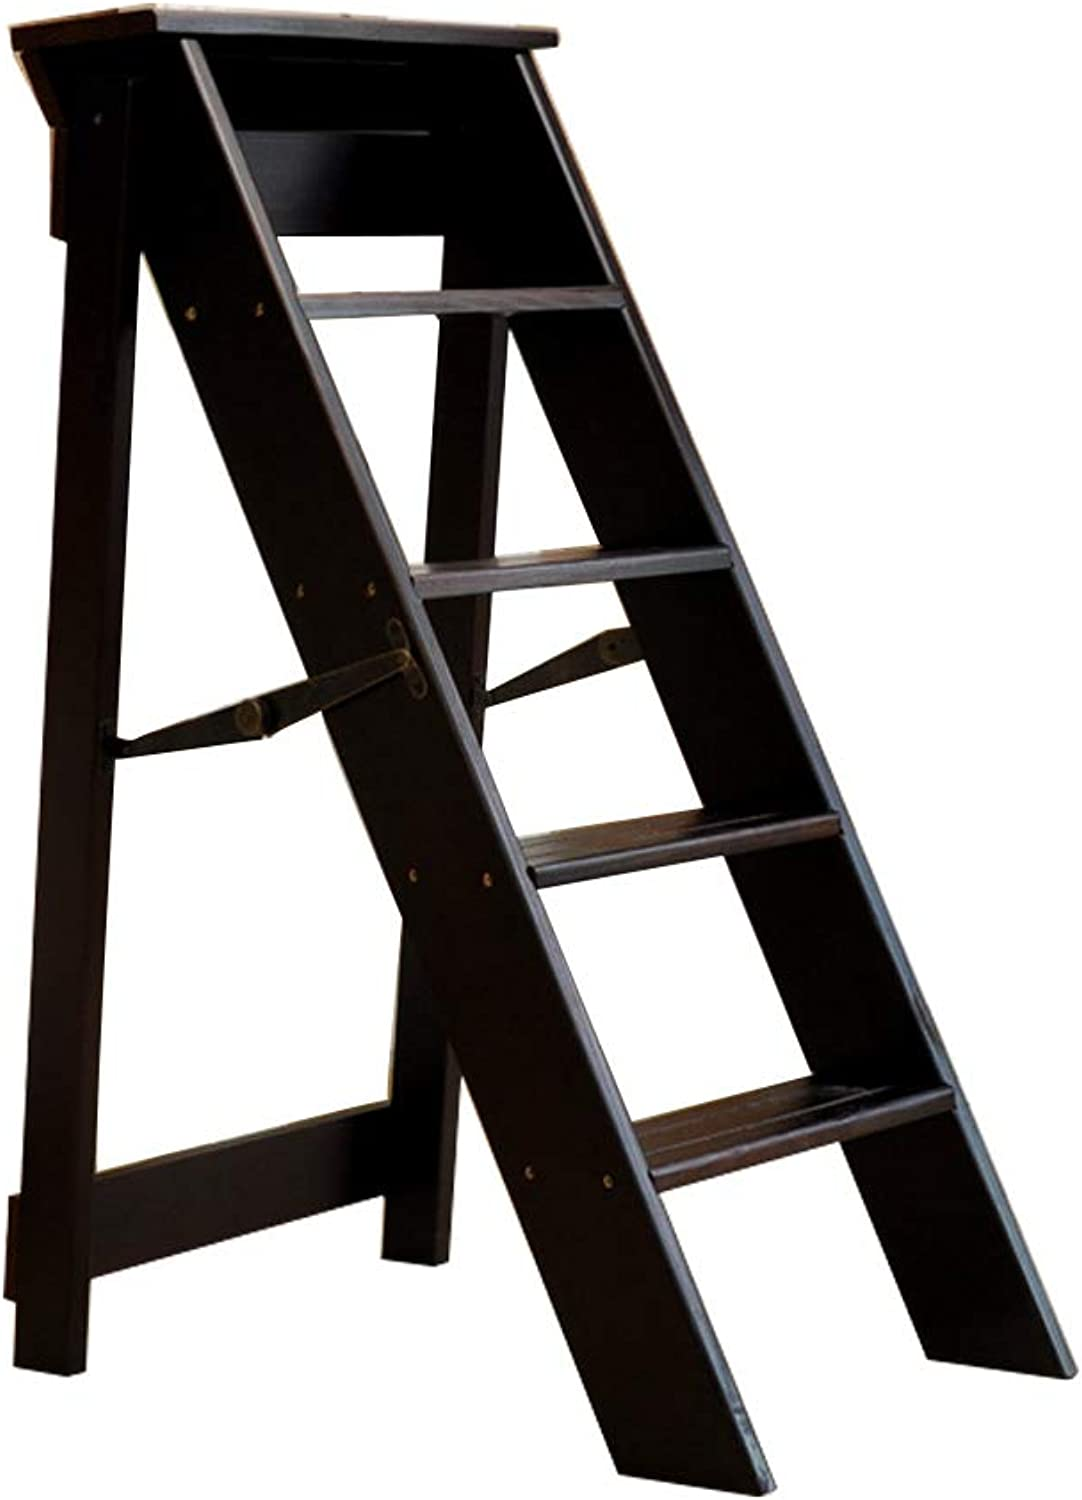 Wooden Folding Step Stool Portable Ladder Chair Stool Multifunction Stepladder Stairway Chair for Home Library 5 Steps Max 150kg Black Walnut